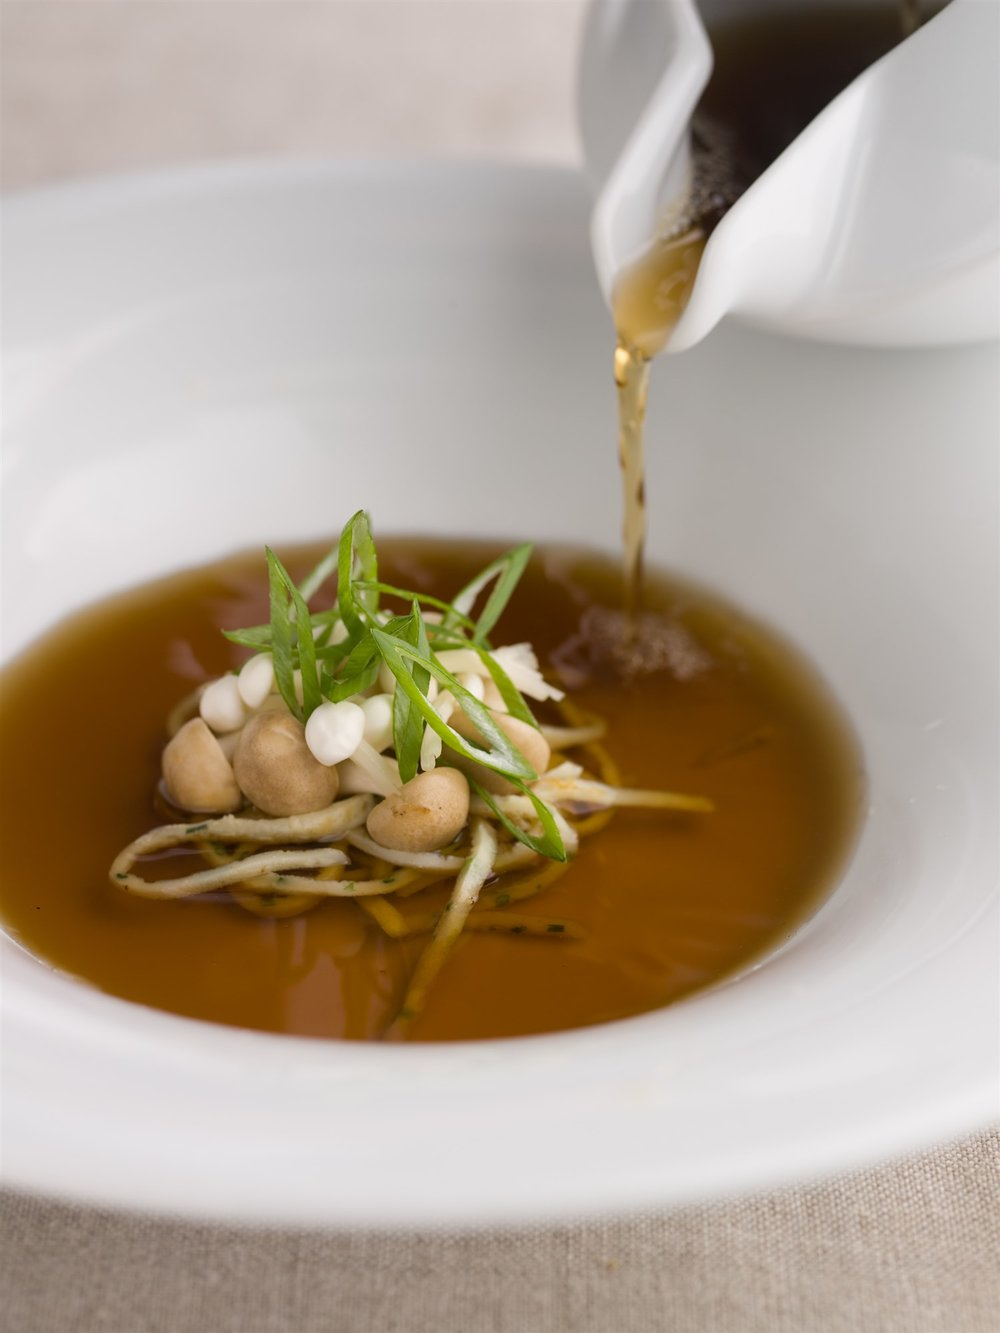 Mushroom consomme at  Araxi . John Sherlock | Courtesy Toptable Group